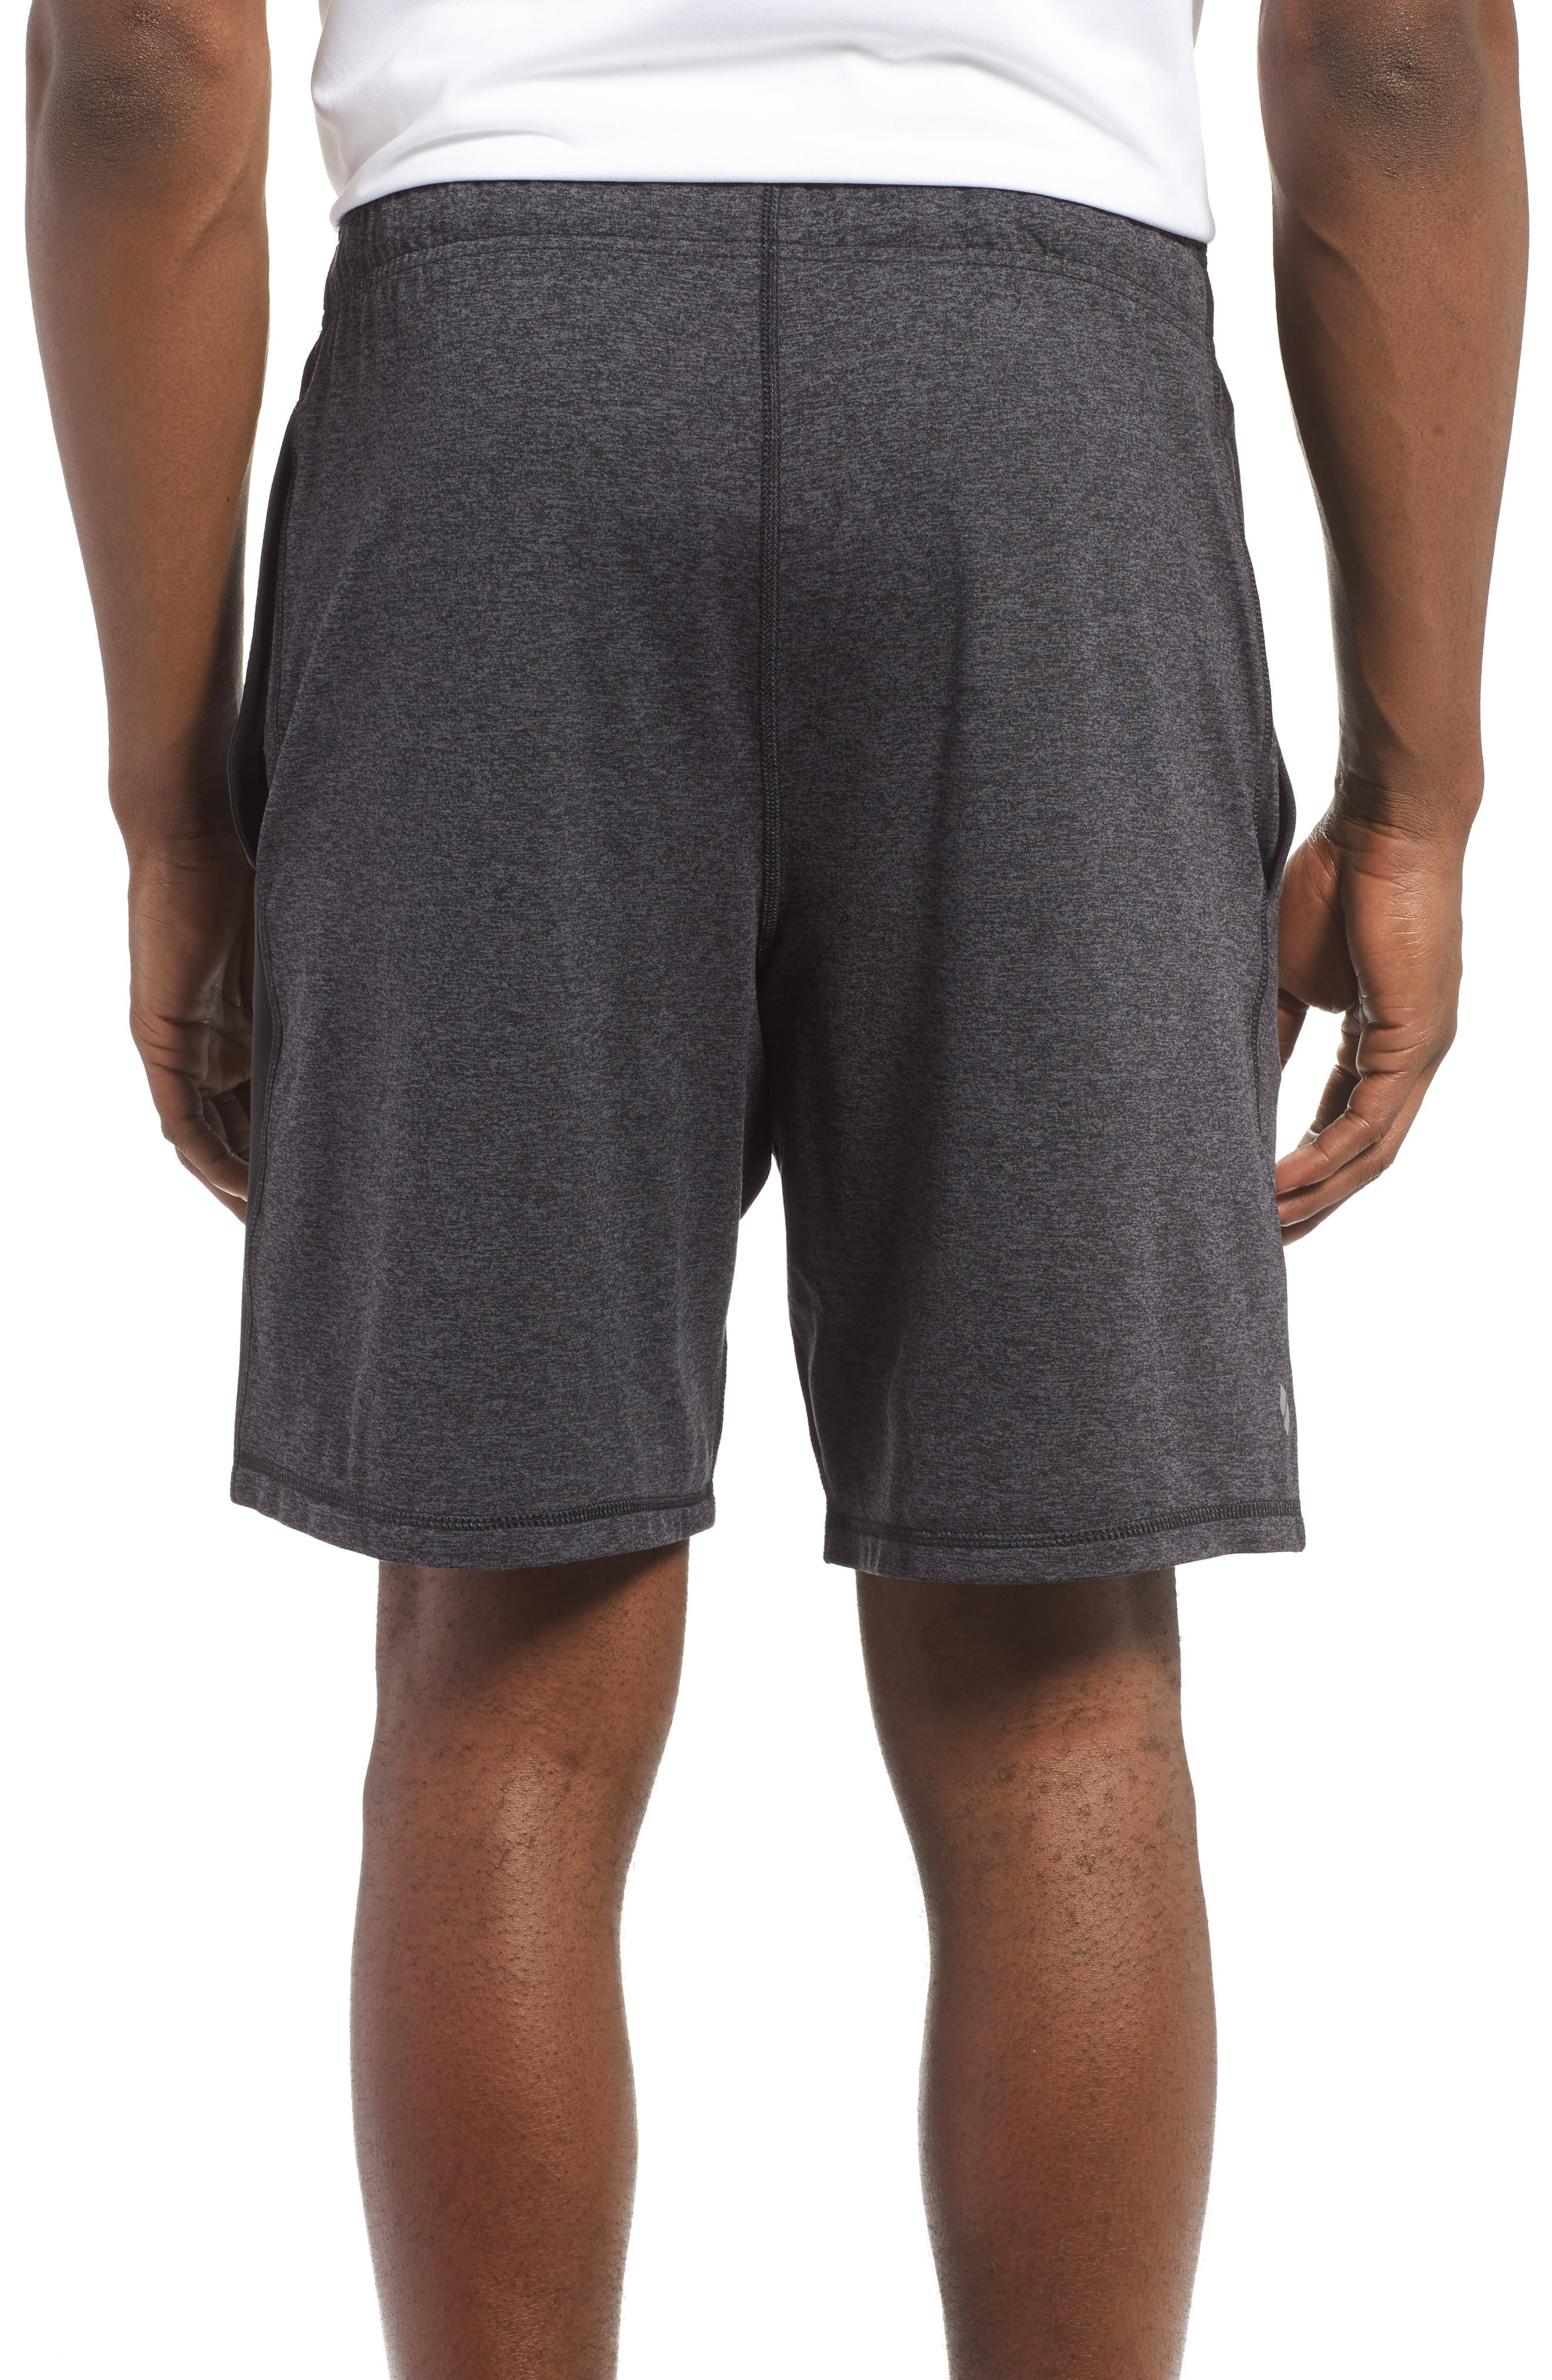 'Go To' Moisture Wicking Stretch Shorts,                             Alternate thumbnail 2, color,                             HEATHER CHARCOAL/ BLACK